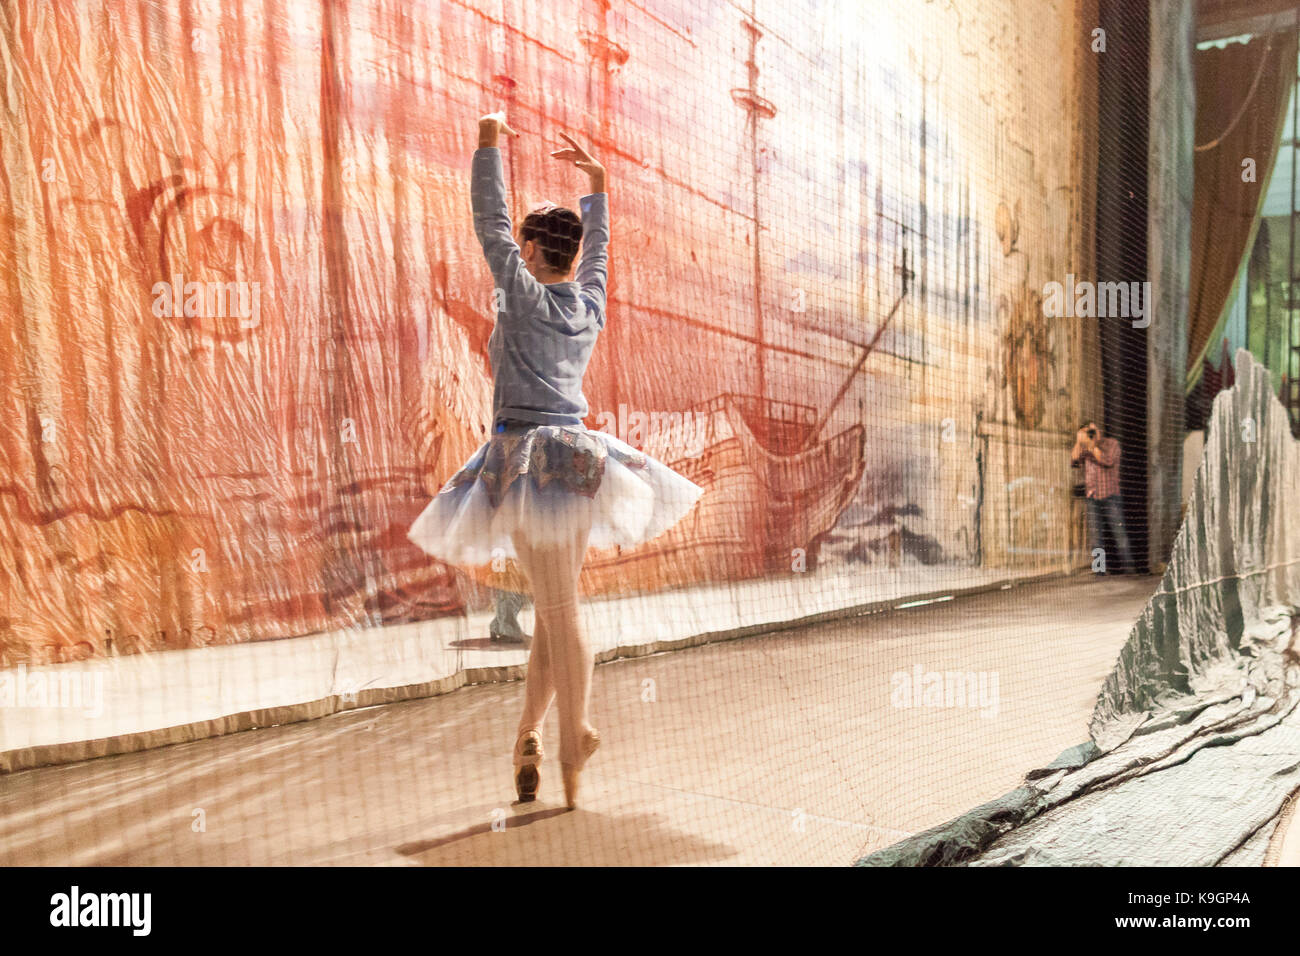 decoration, backstage, theater. man with camera taking photos of magnificent ballerina wearing for rehearsal in - Stock Image